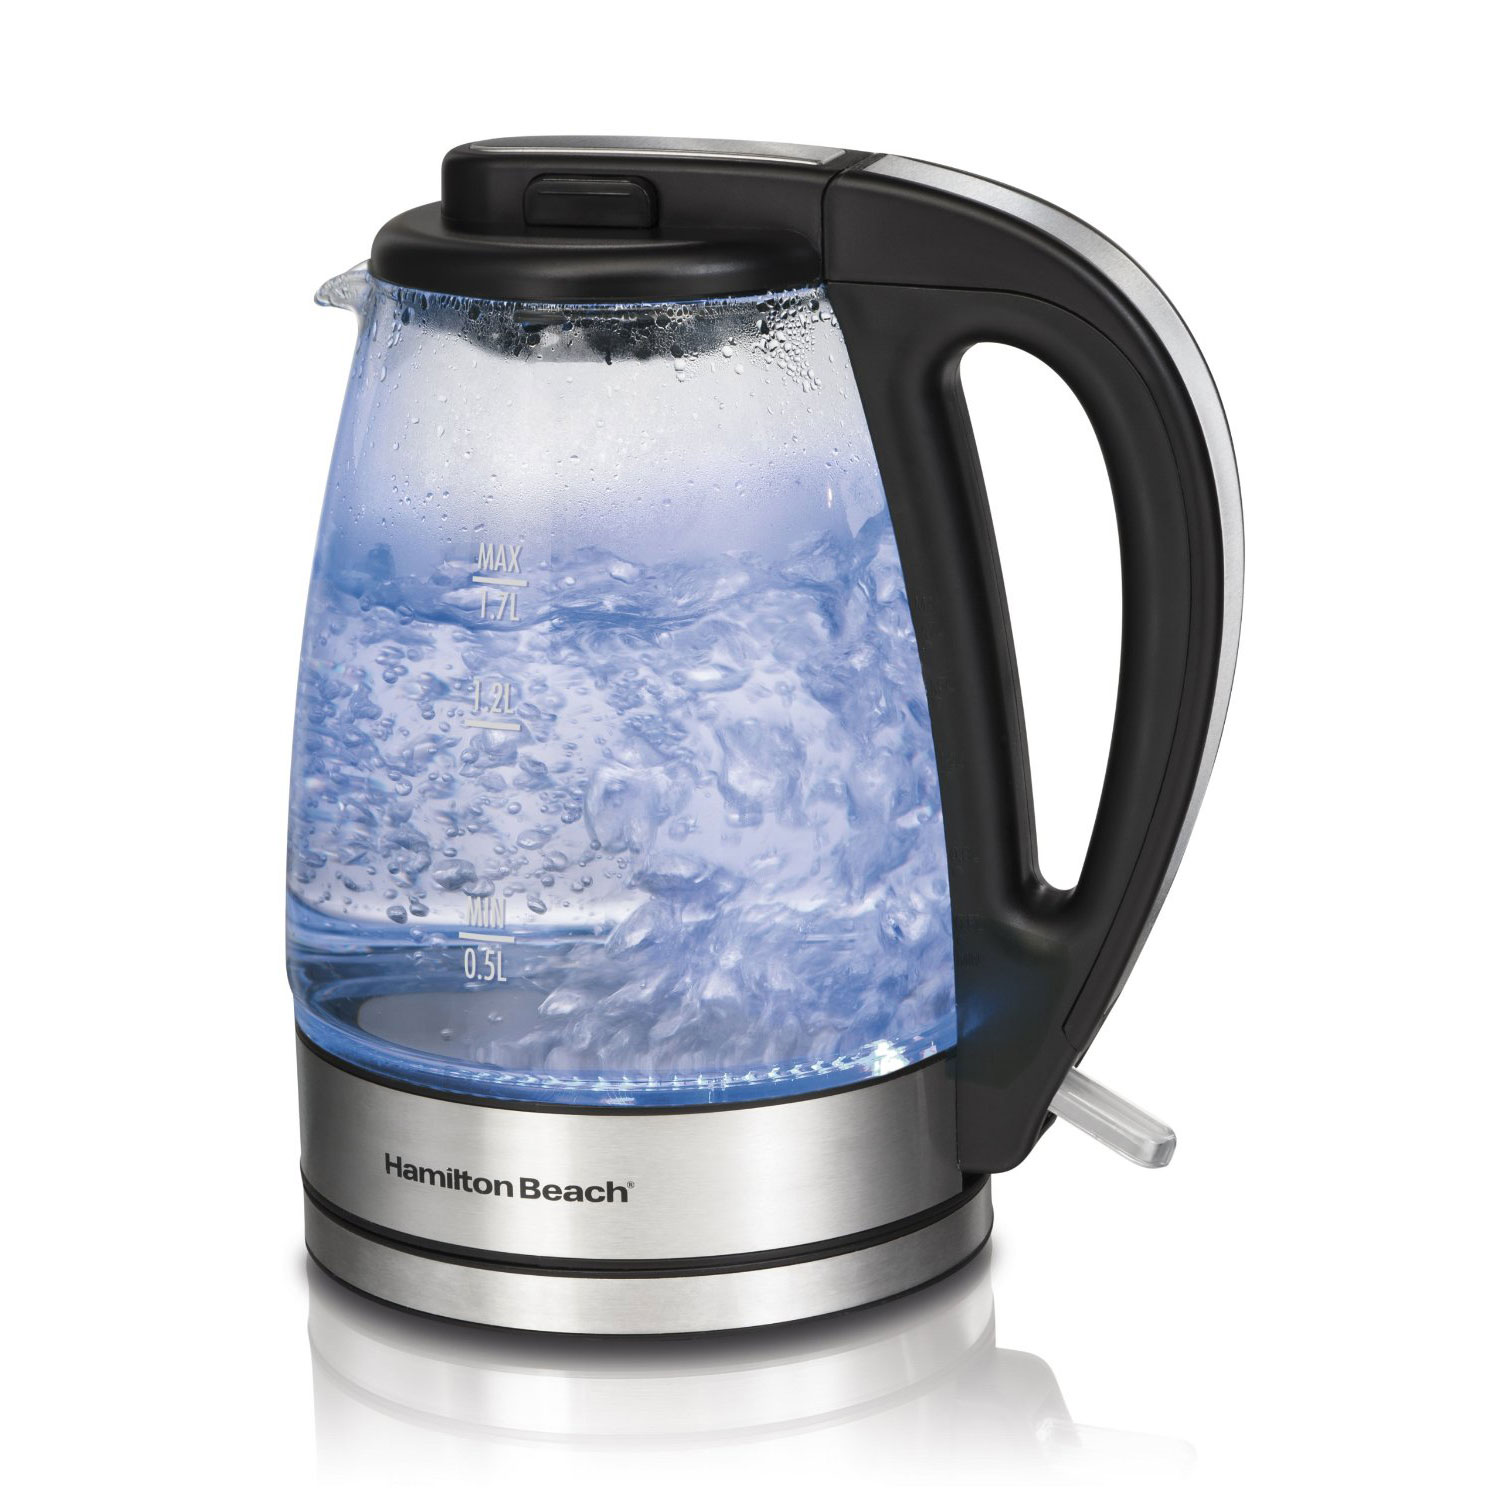 Hamilton Beach 40865 - Soft Blue Illuminated Glass Electric Kettle, 1.7-Liter